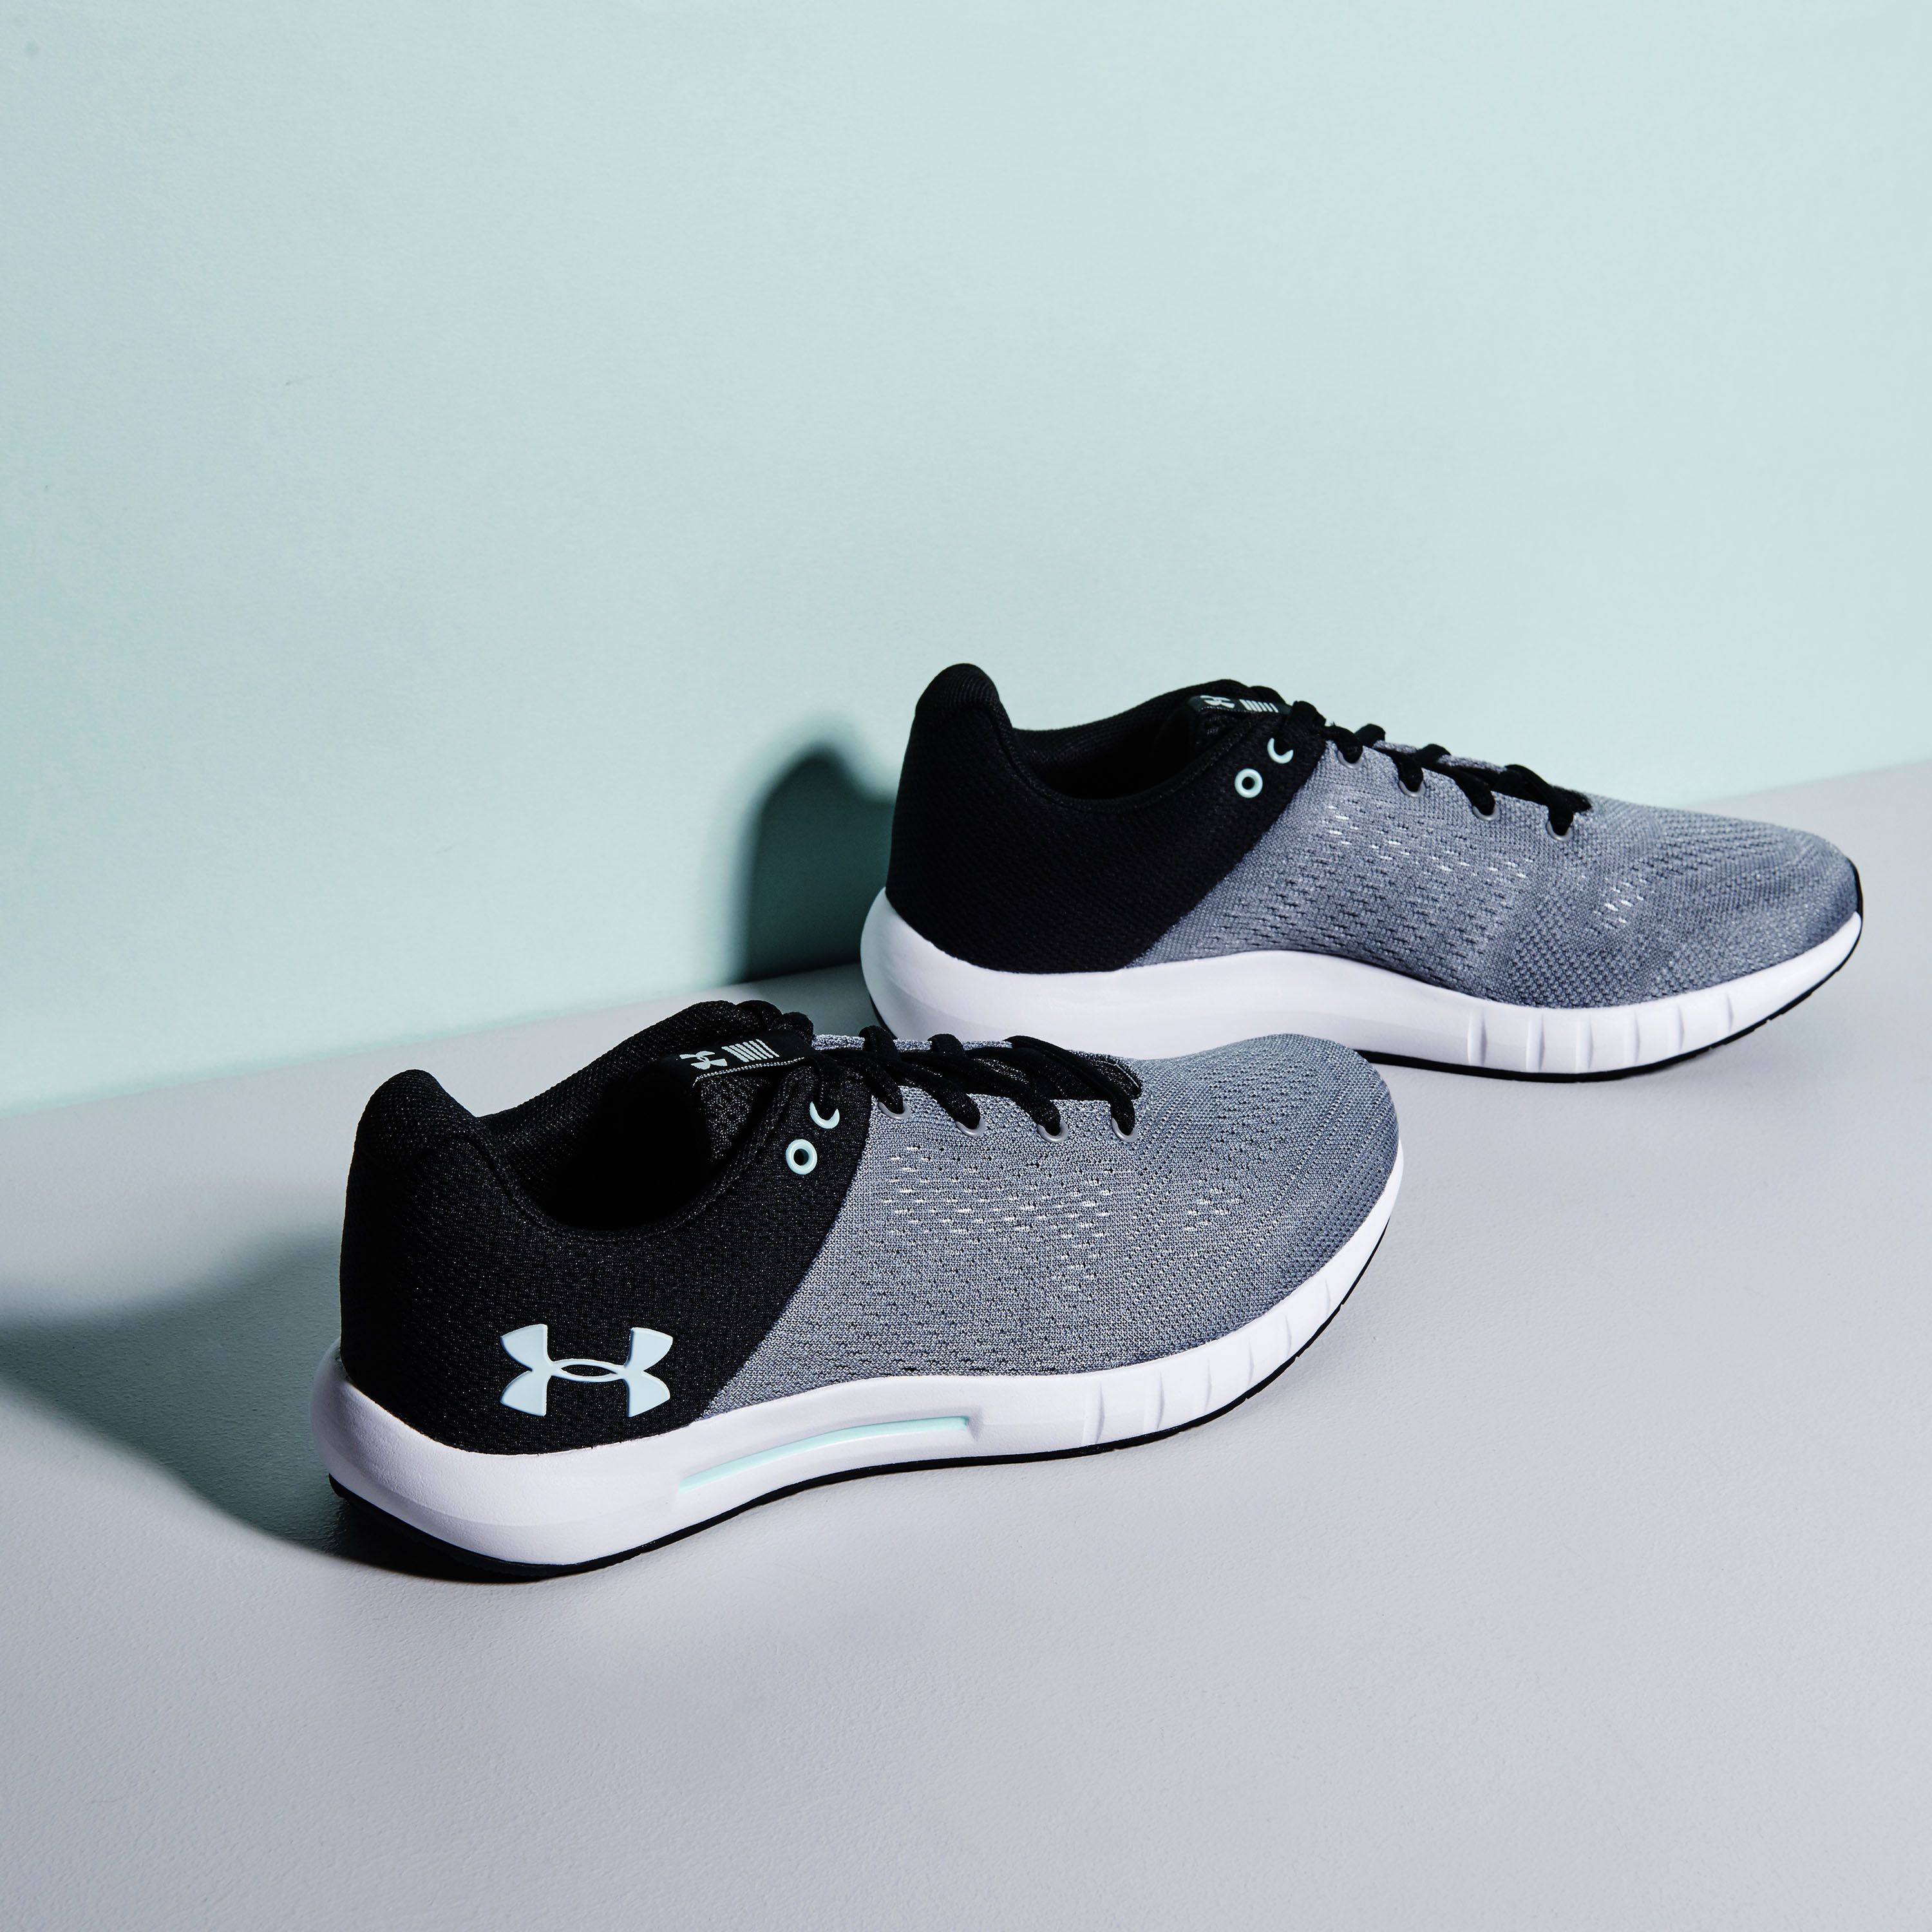 the best attitude 093d1 45b7d What are you in pursuit of  Reach your goals with the Under Armour Pursuit  trainers.